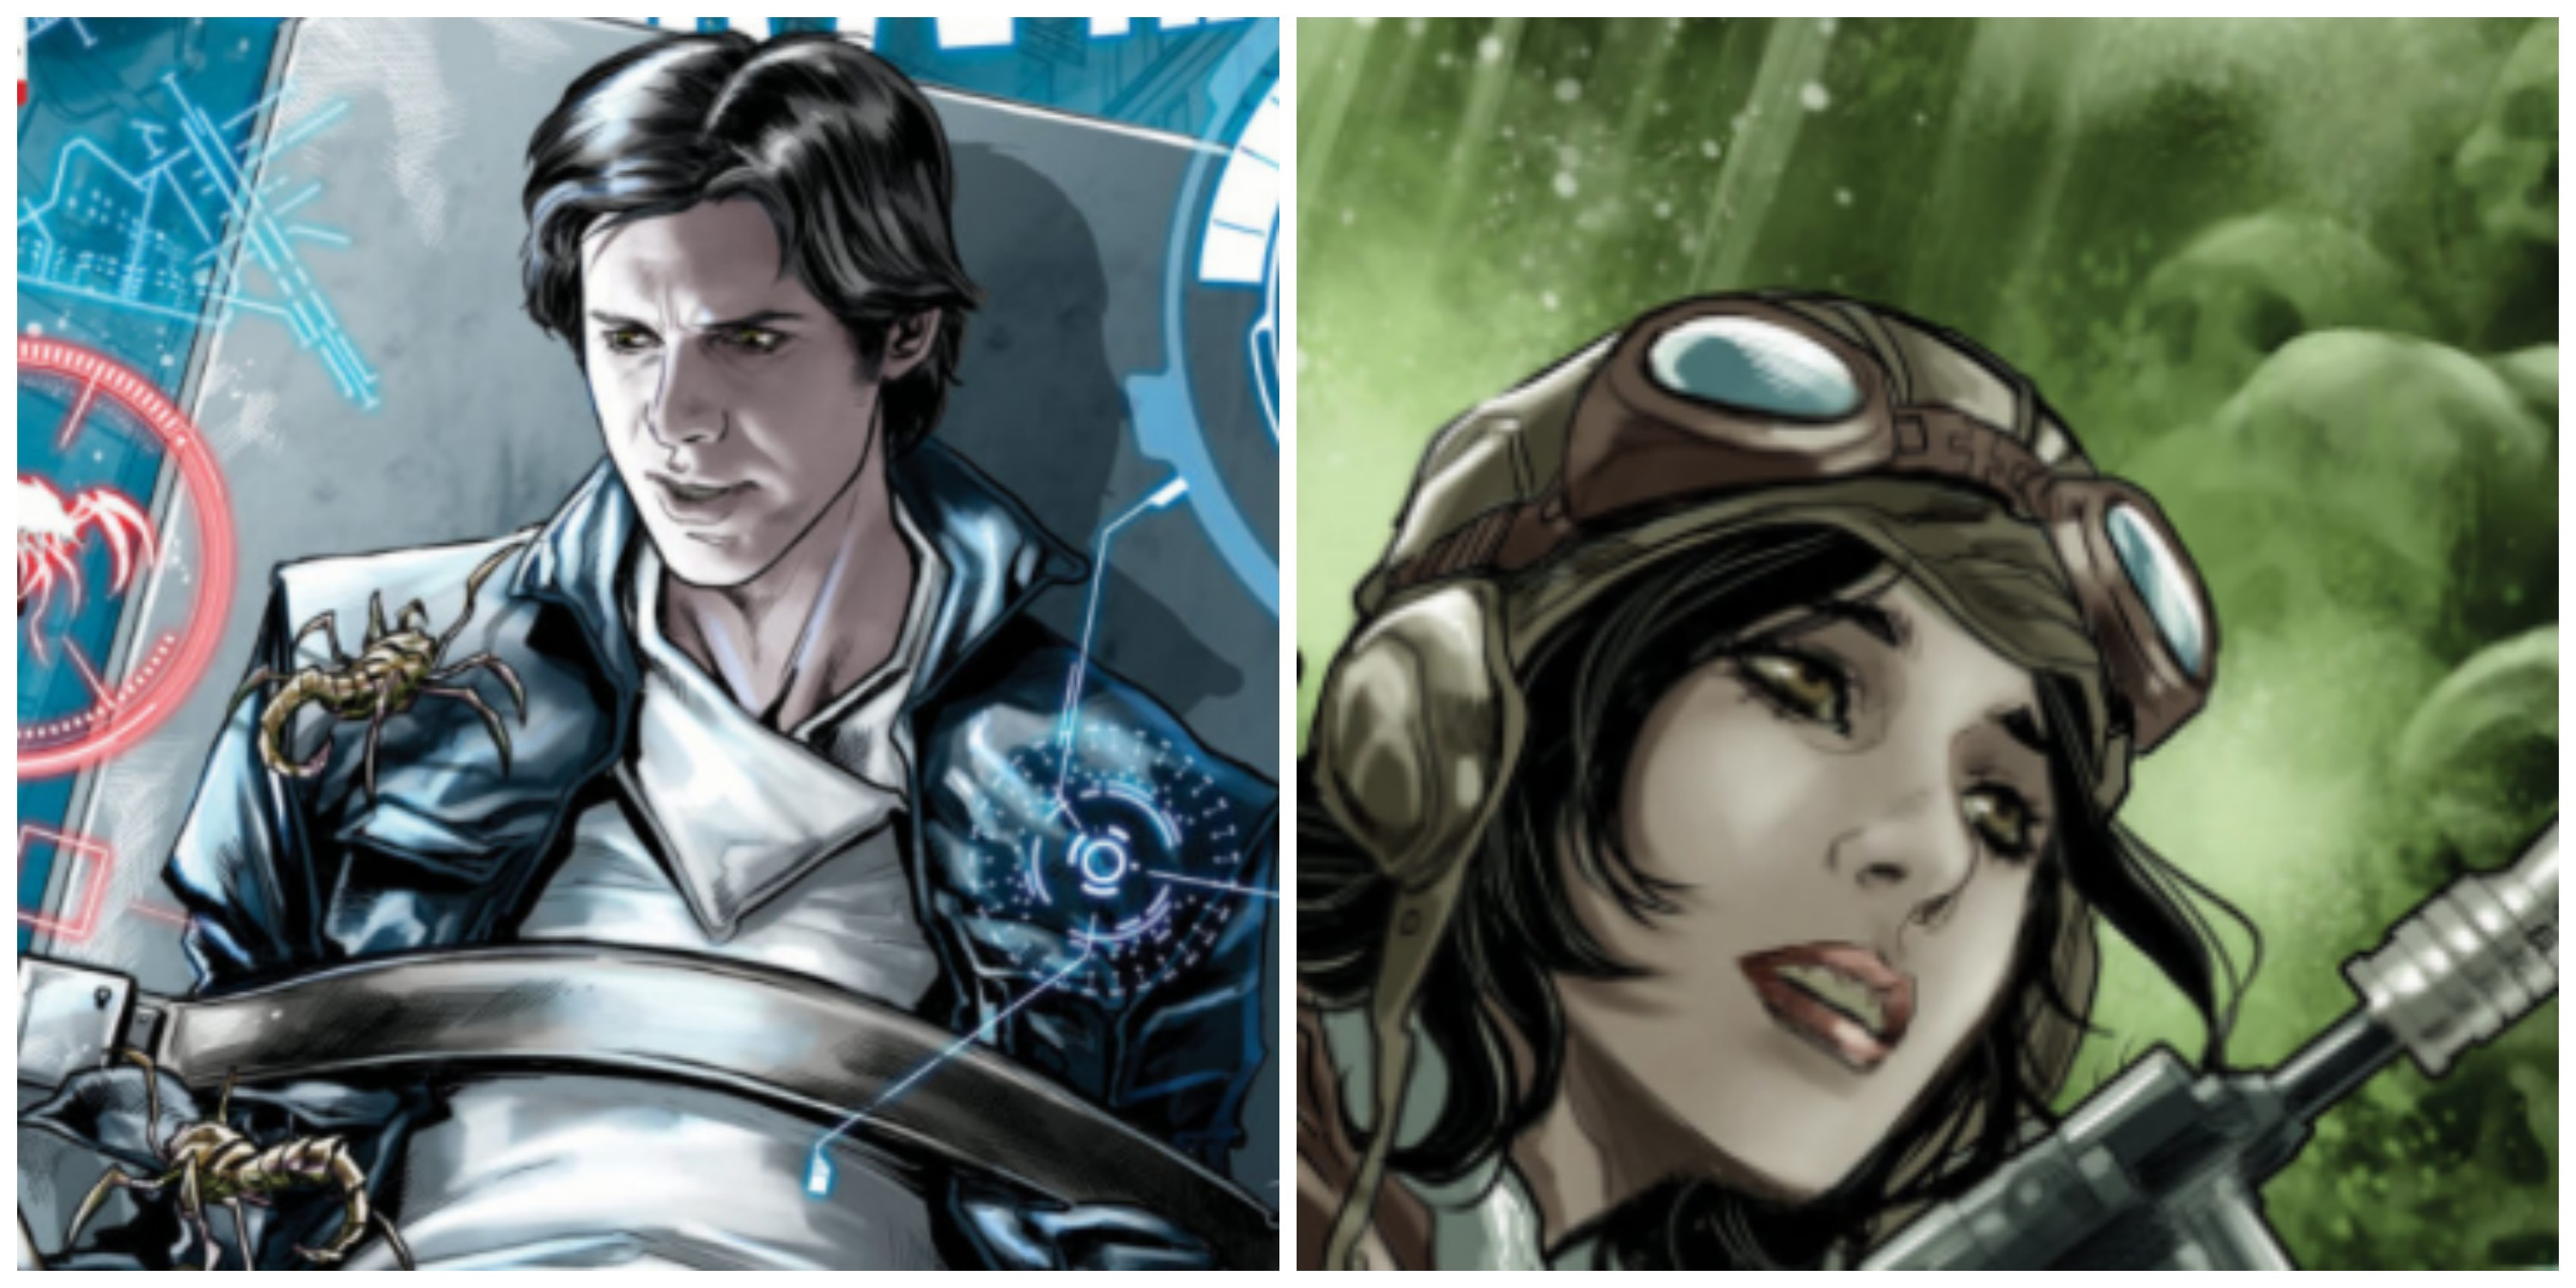 LEFT: Han surrounded by creepy buys. RIGHT: Doctor Aphra among skulls.